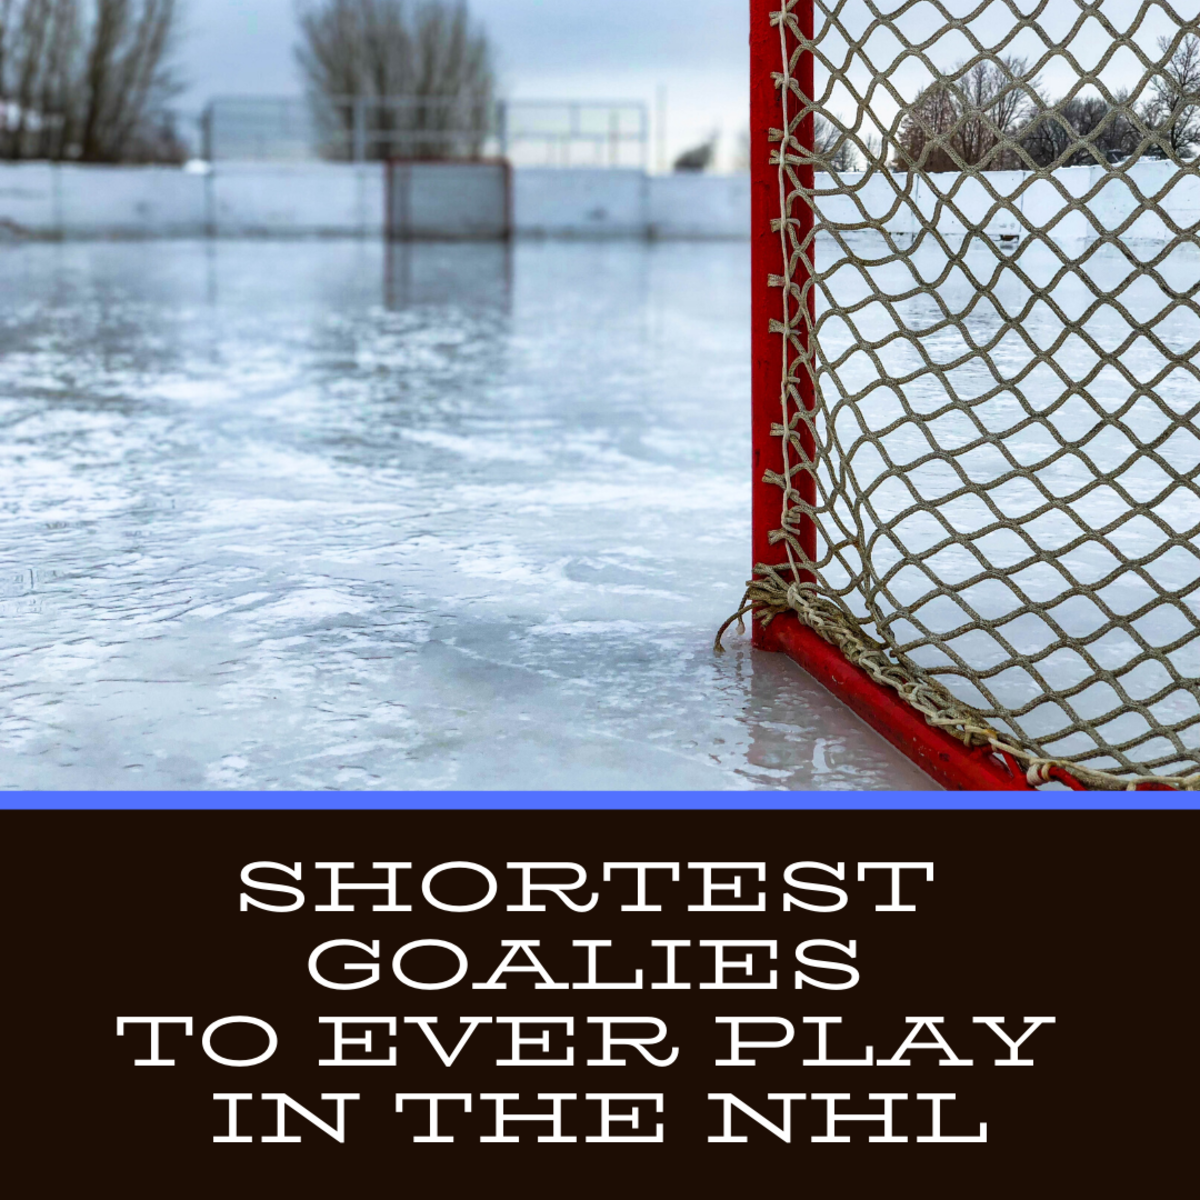 14 Shortest Goalies to Ever Play in the NHL